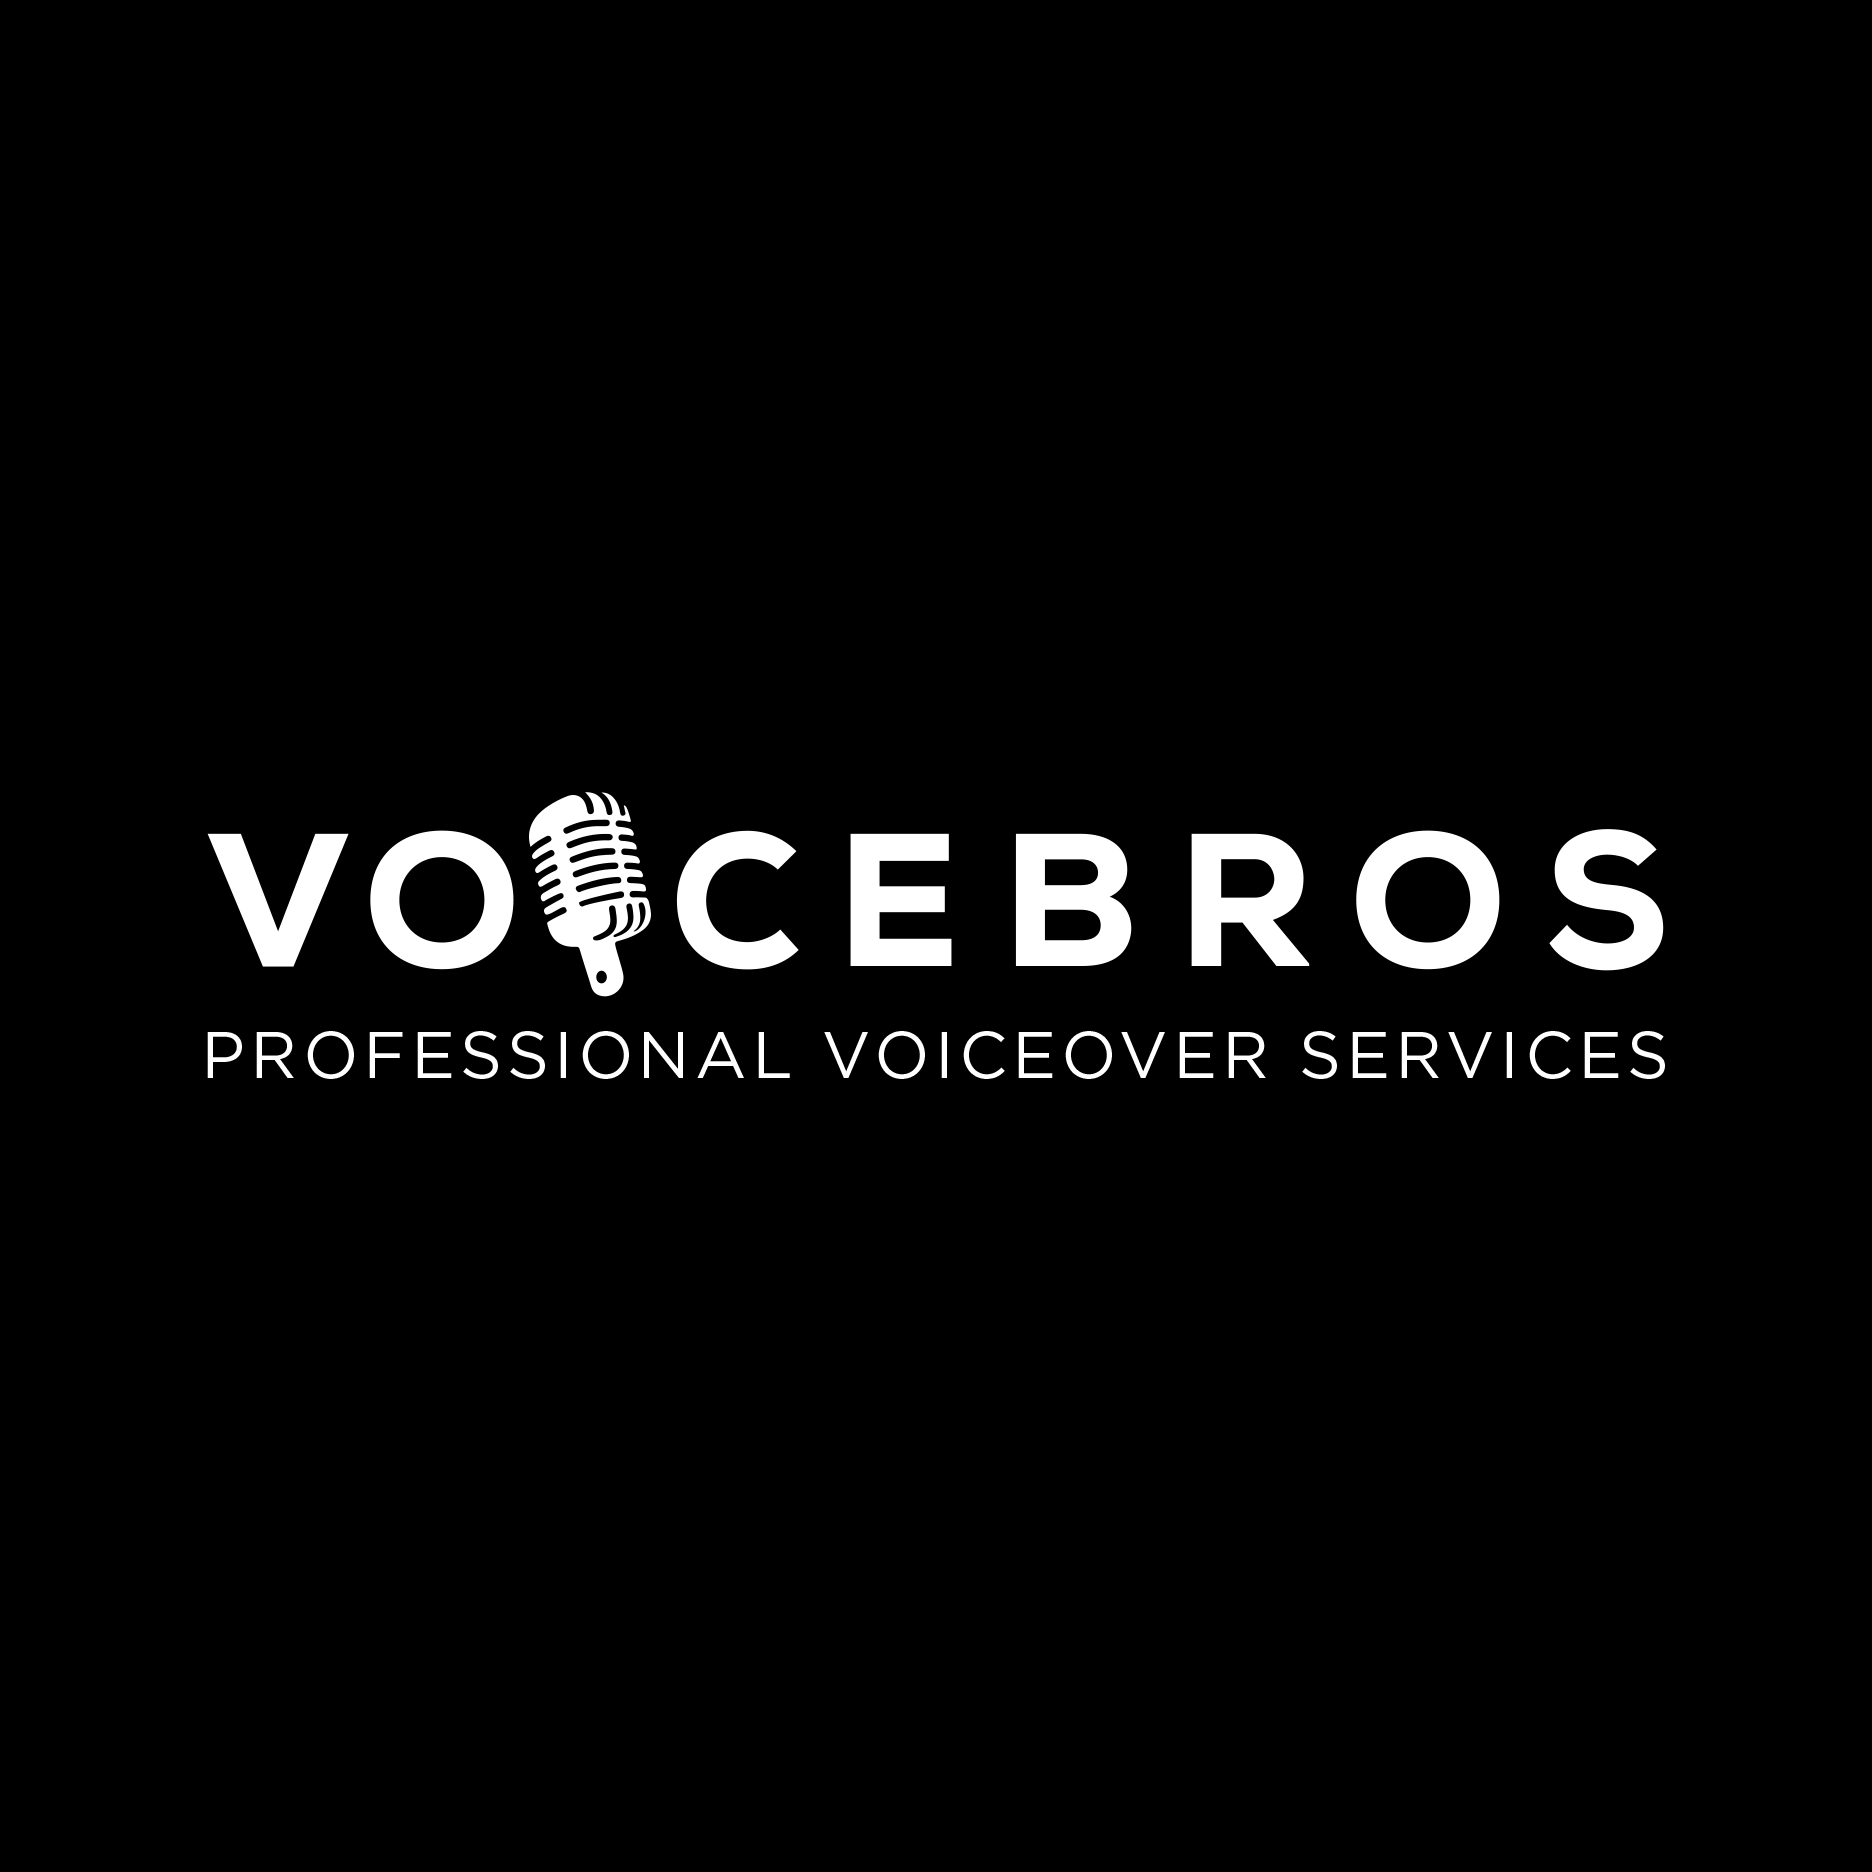 Nathalie L. is a voice over actor